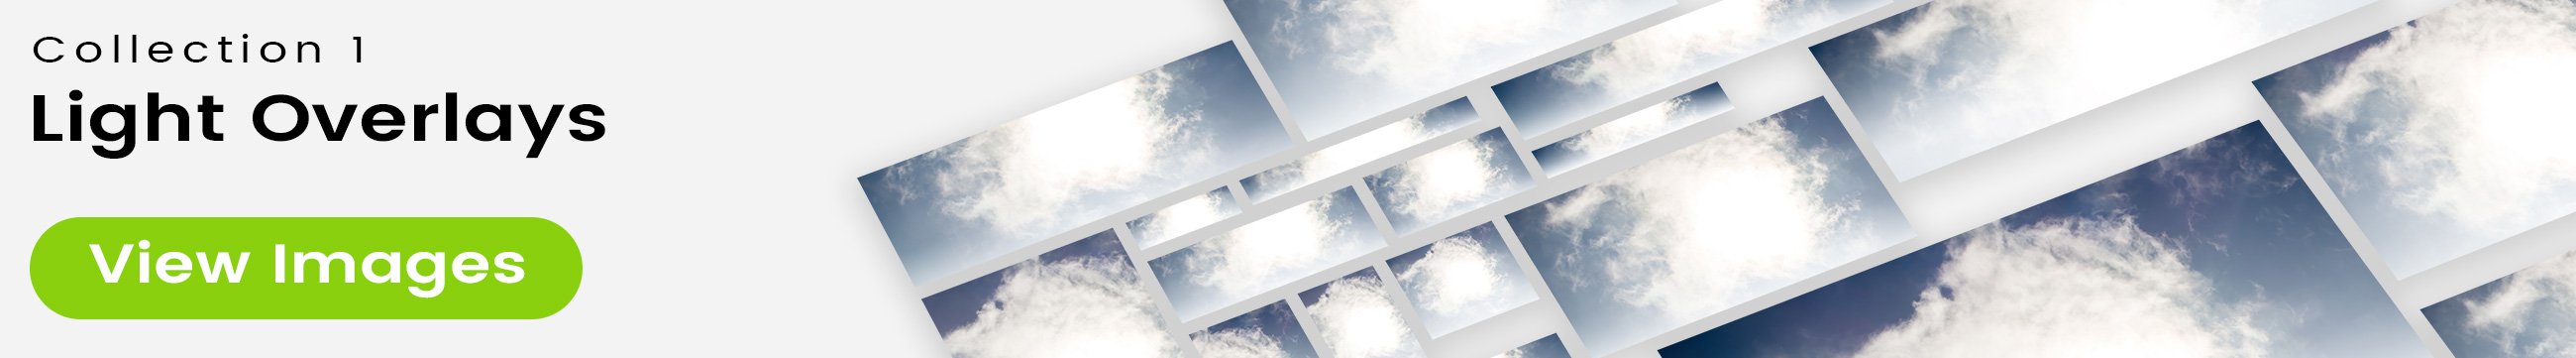 See 25 bonus images included with clouds stock image 9477. Collection 1 of 4 features a light overlay design.